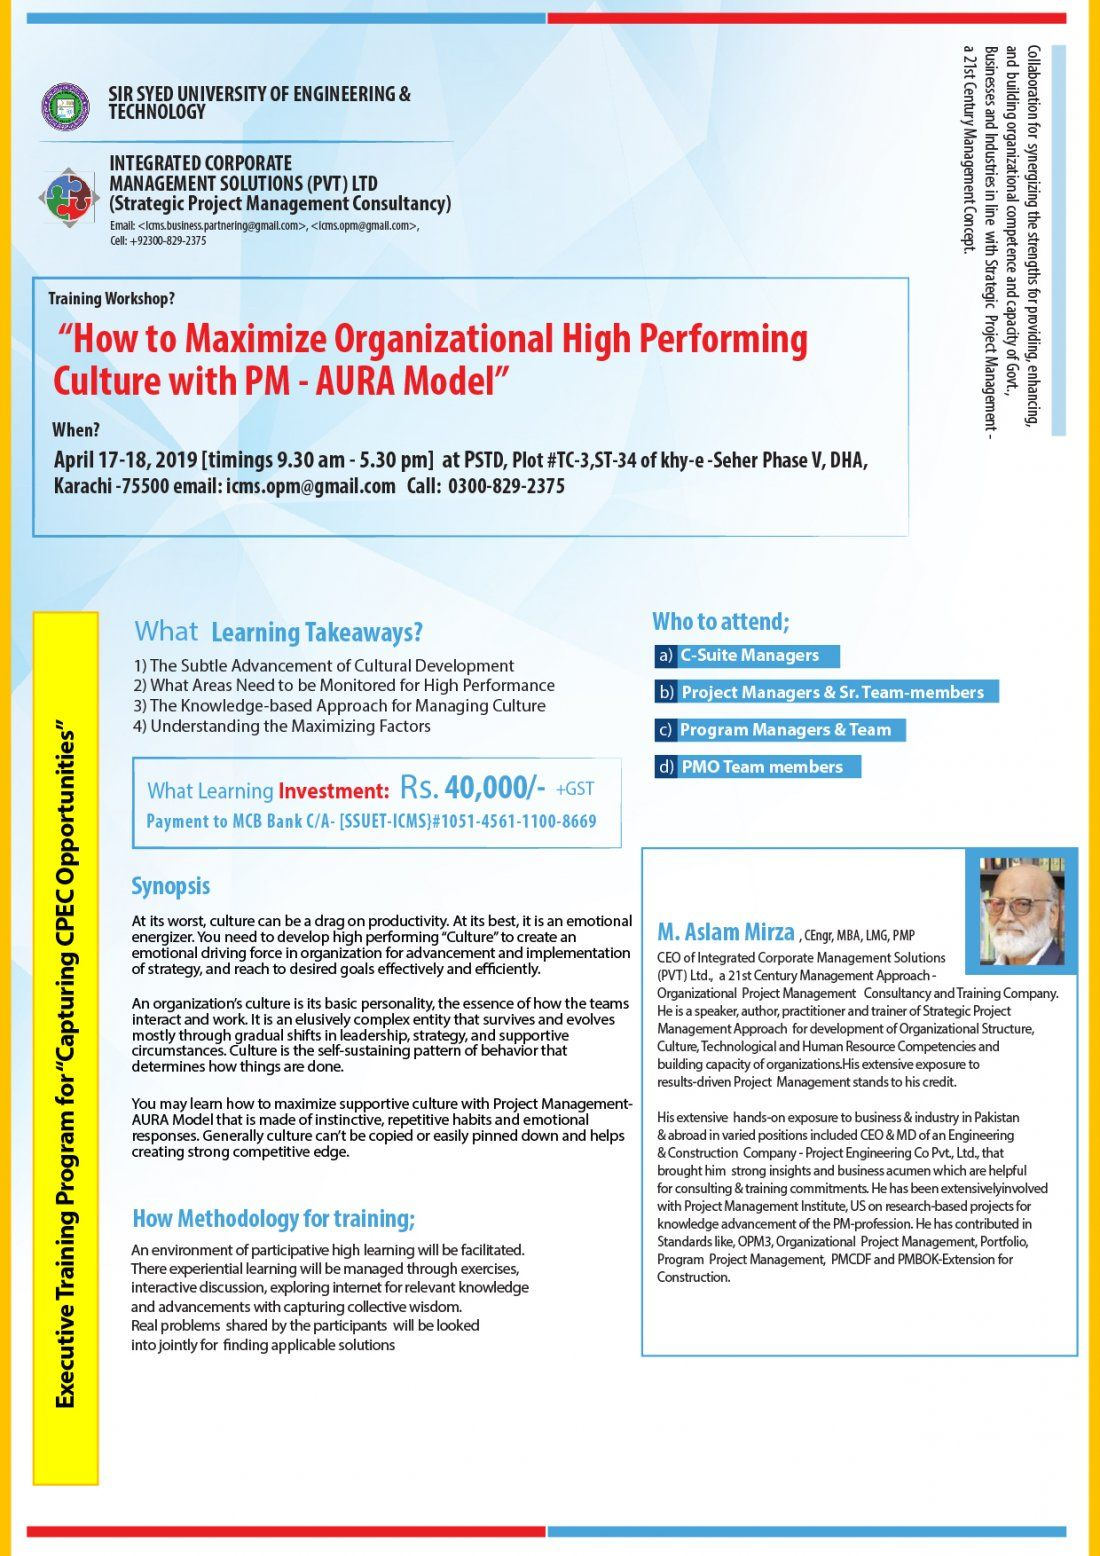 Training Workshop - How to Maximize Organizational Culture with Project Management AURA Model